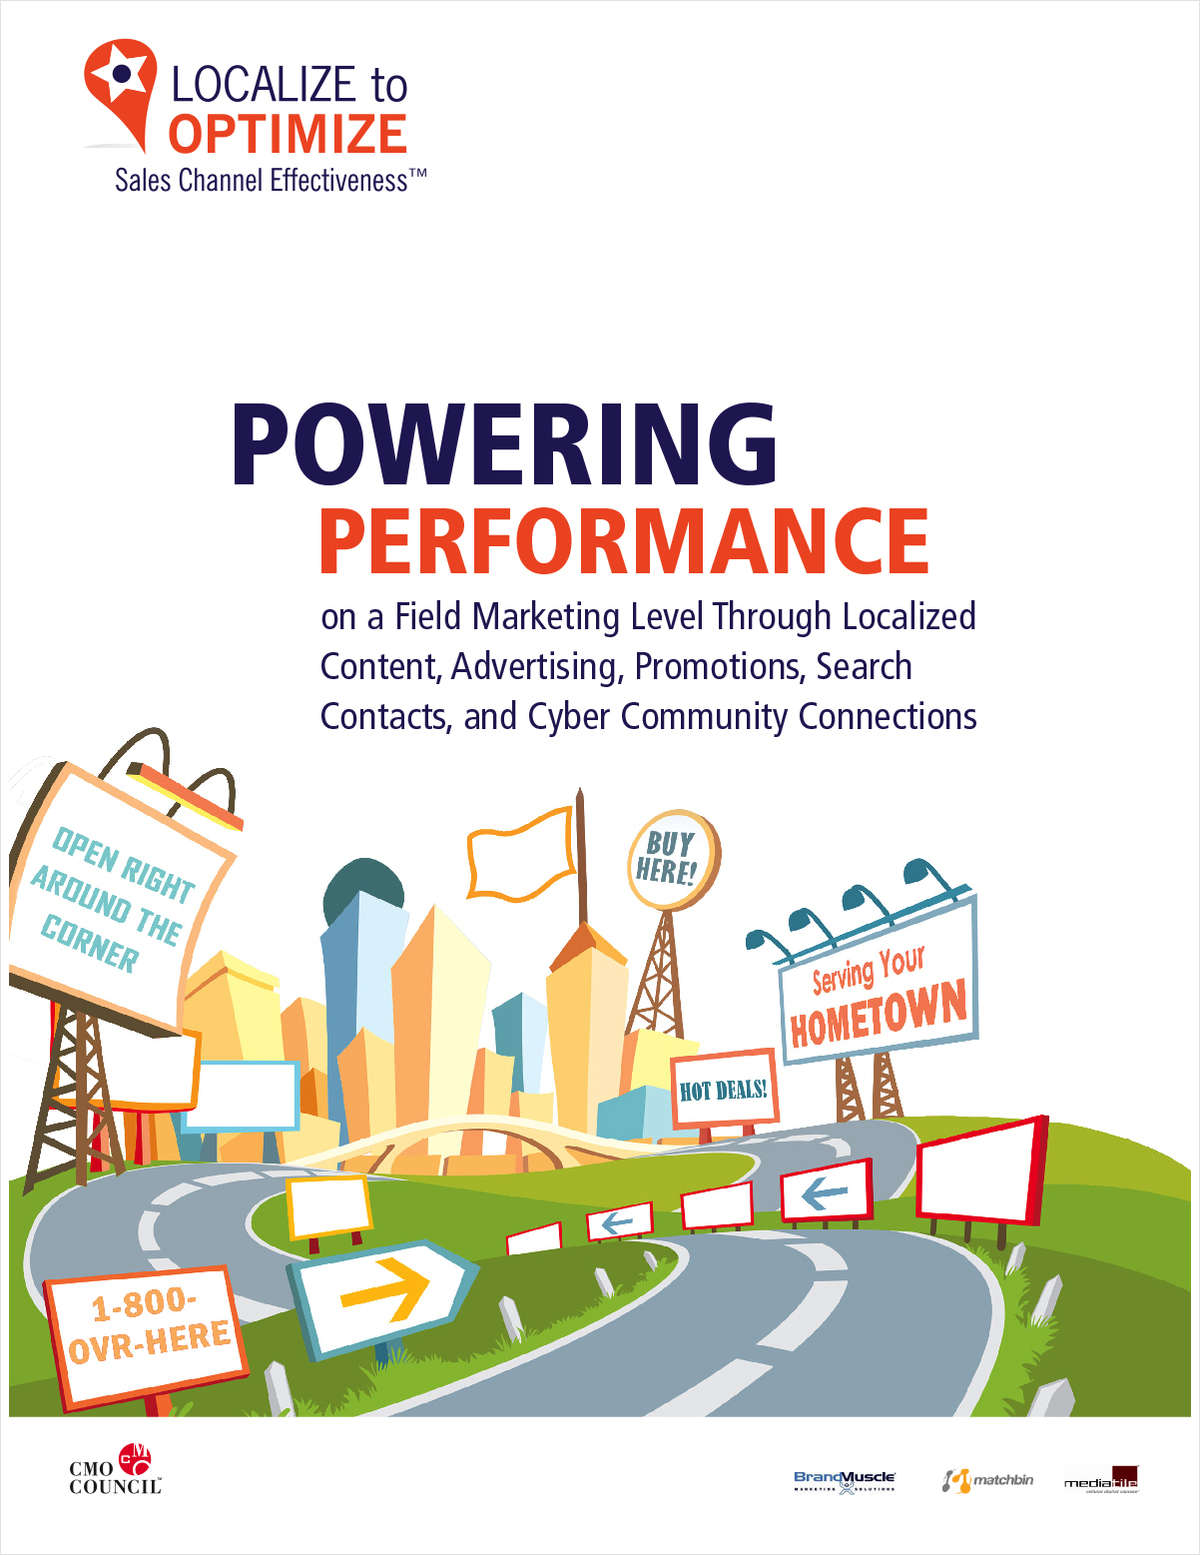 Powering Performance on a Field Marketing Level through Localized Content Advertising, Promotions, Search Contacts, and Cyber Community Connections